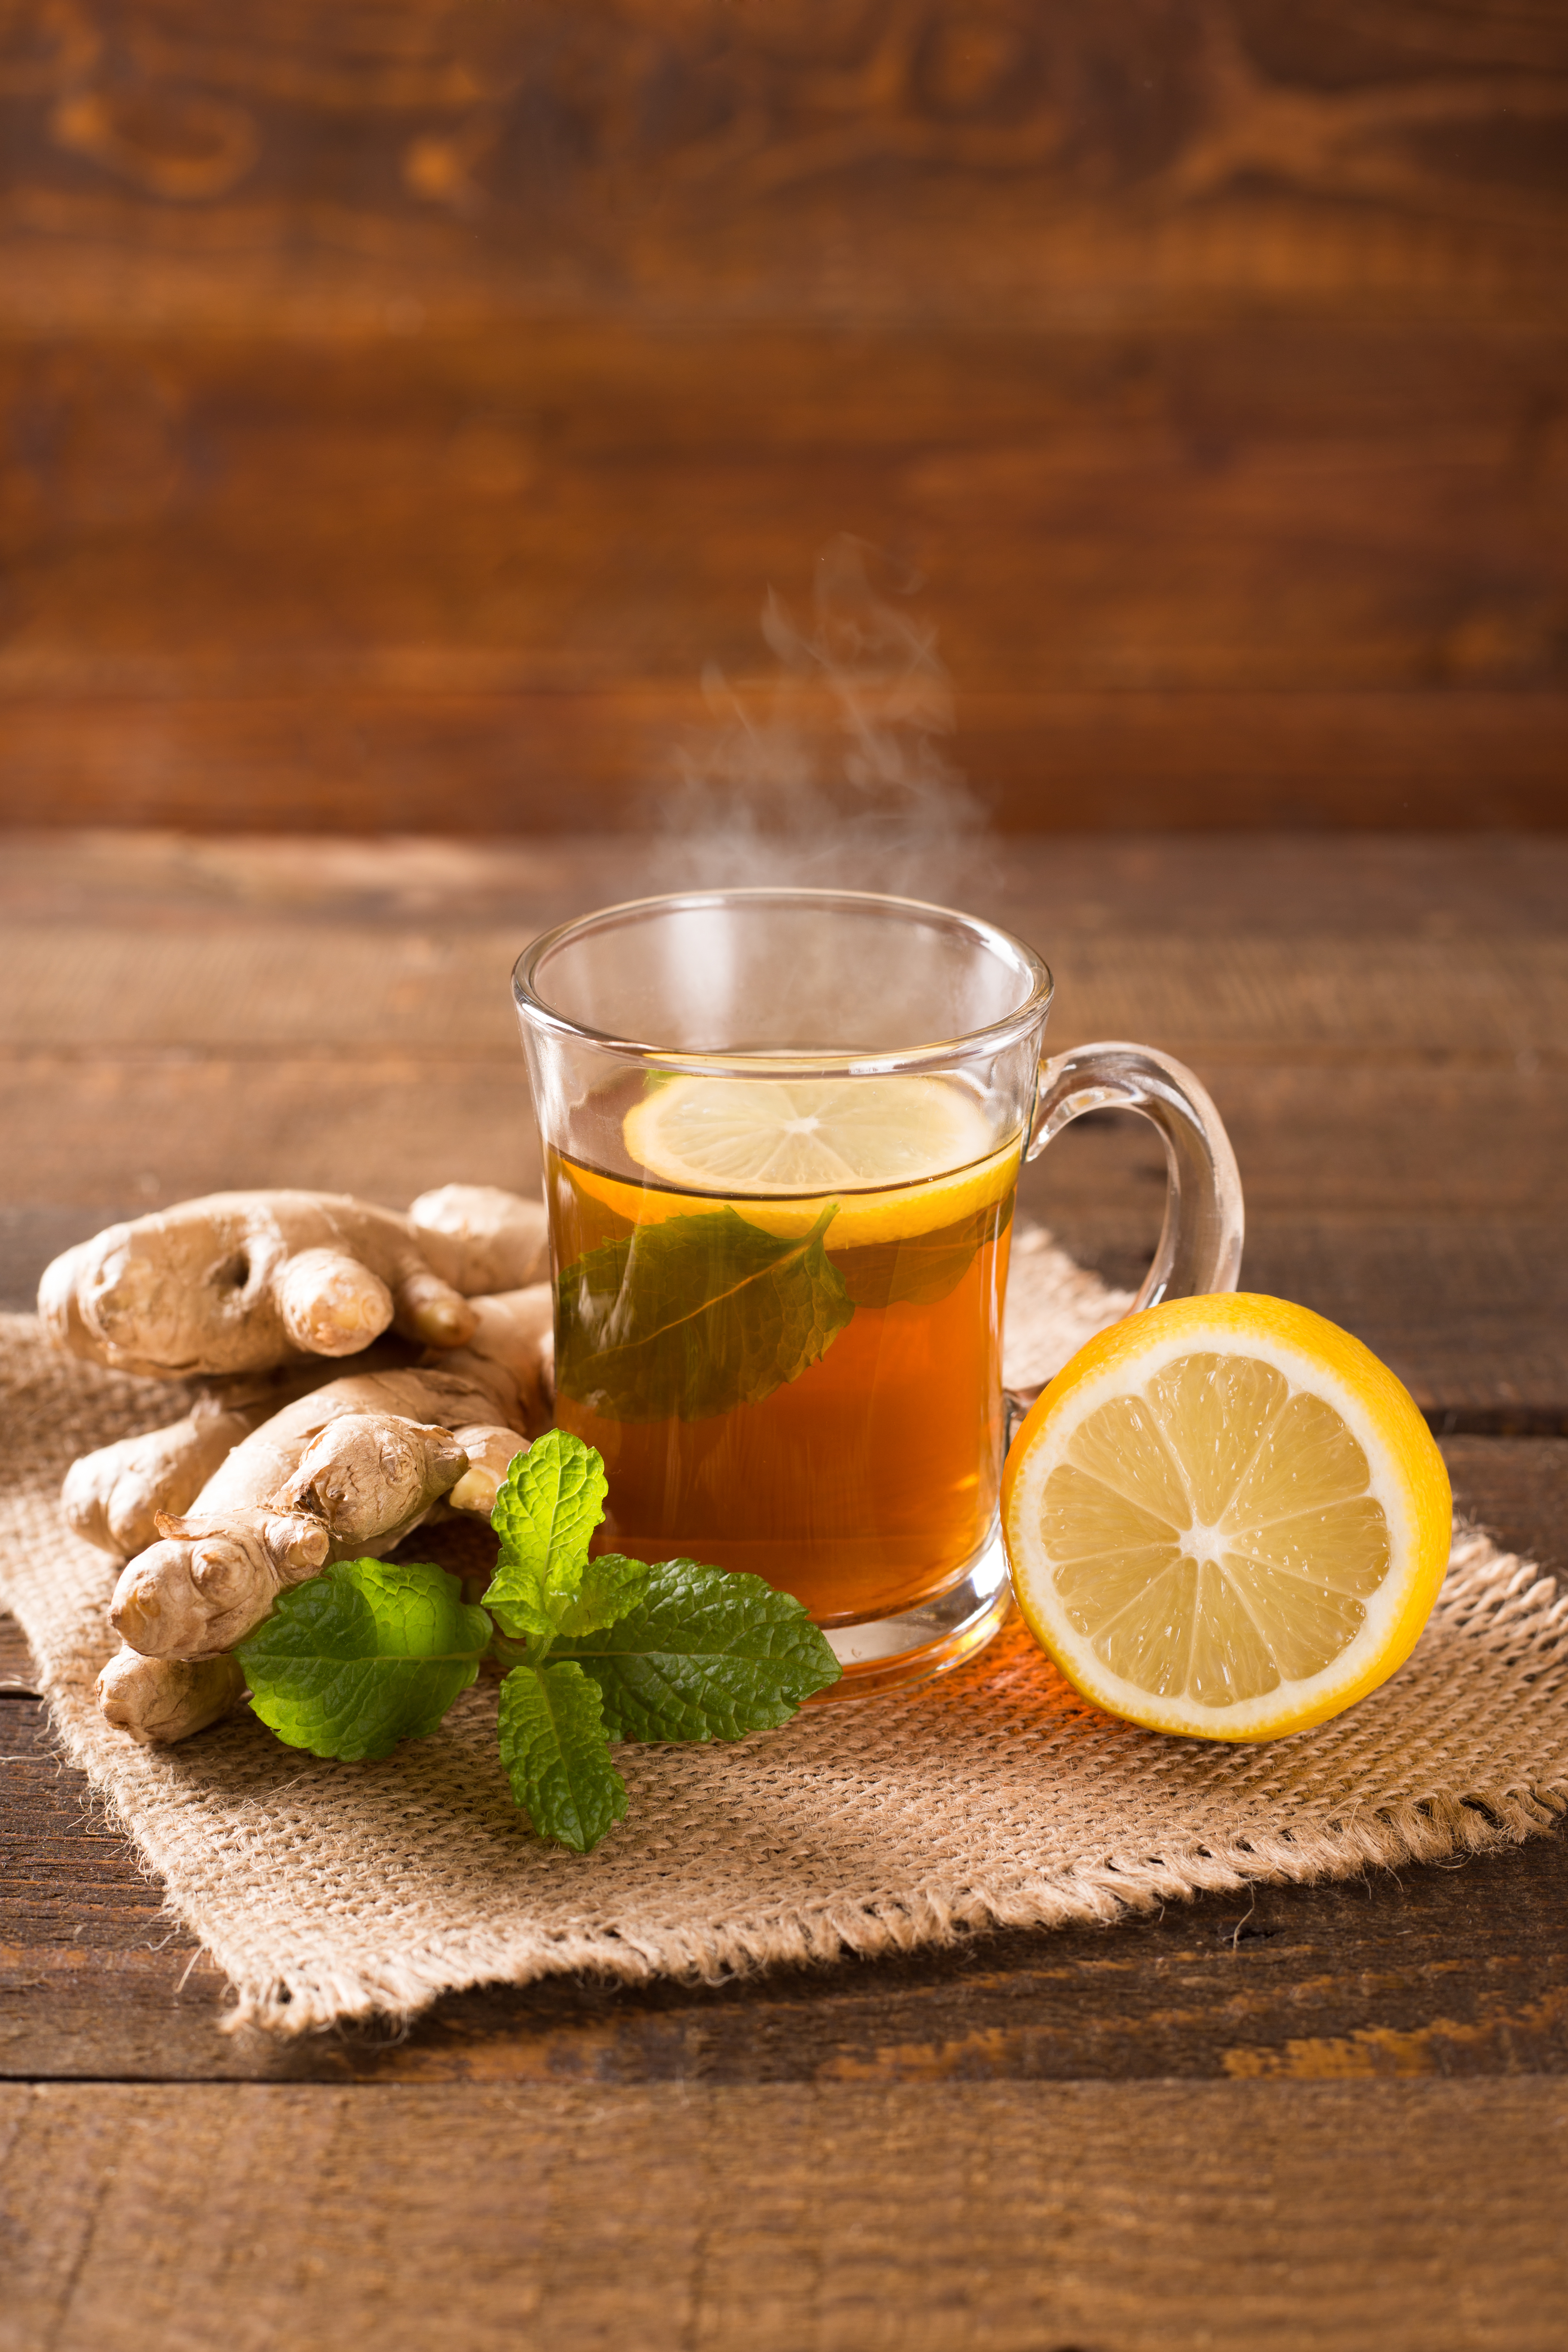 Homemade weight loss cup of hot ginger tea with mint and lemon